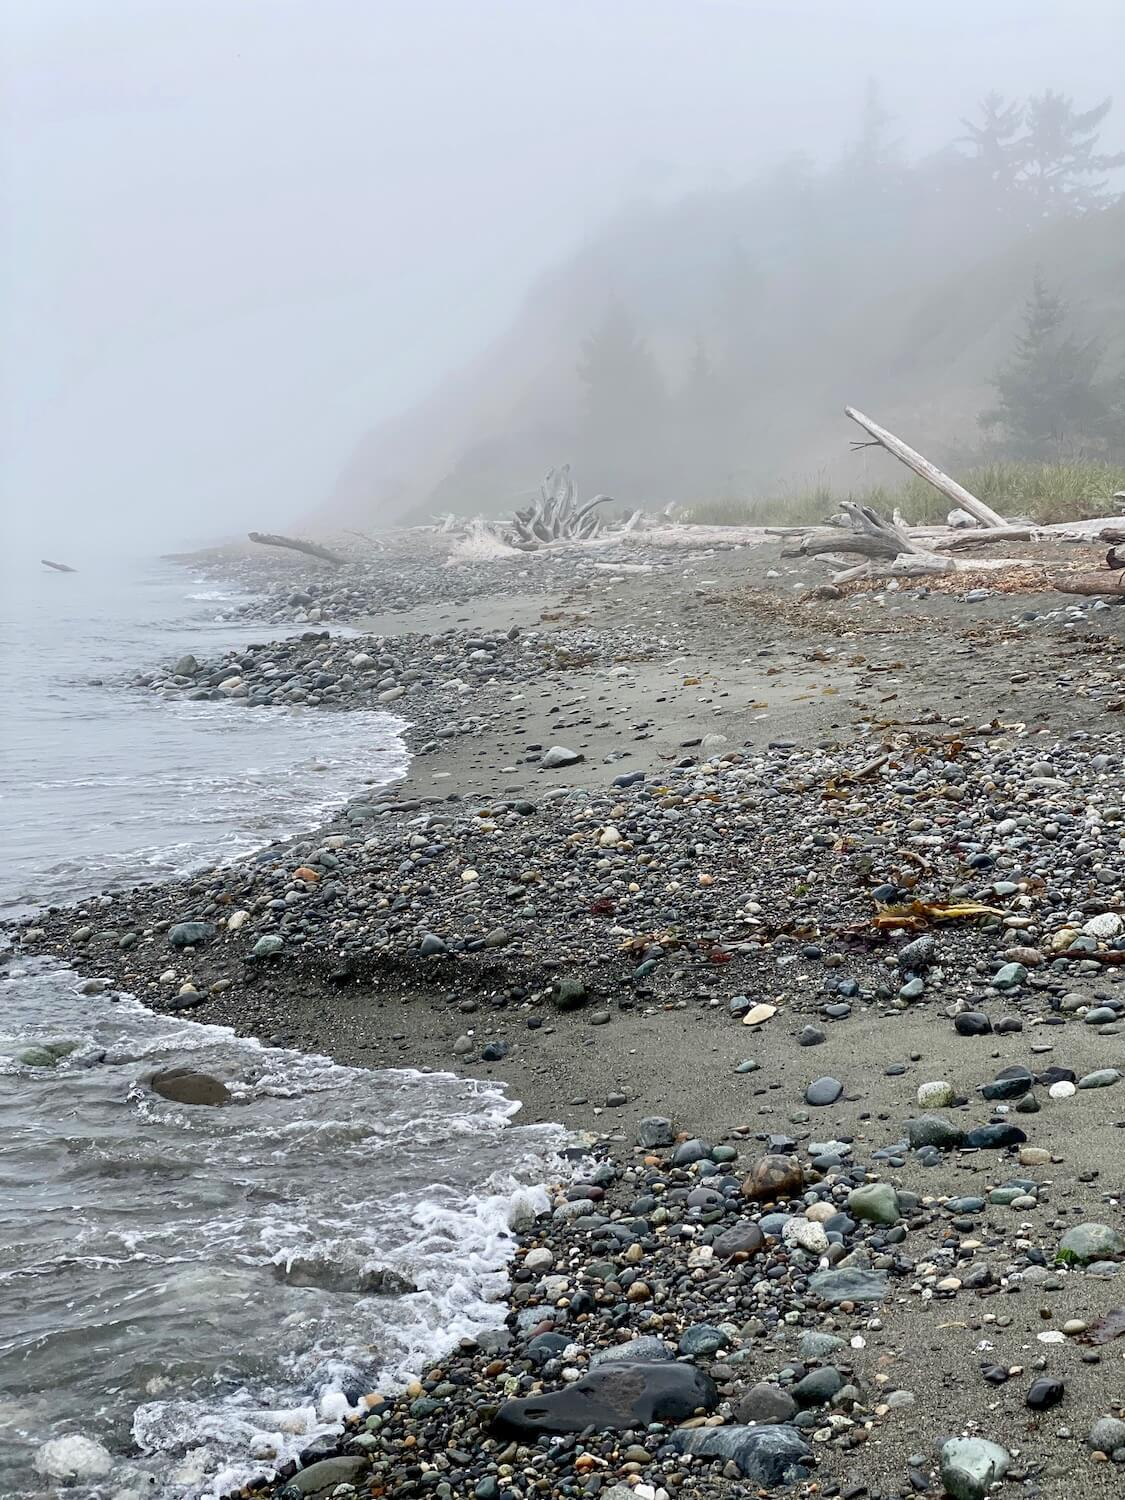 This beach scene shows Puget Sound saltwater waves gently washing onto a pebbly beach with sand mixed with rocks that lead up to several dramatic driftwood logs. The fog is thick and partly hides the layers of coastal fir trees.